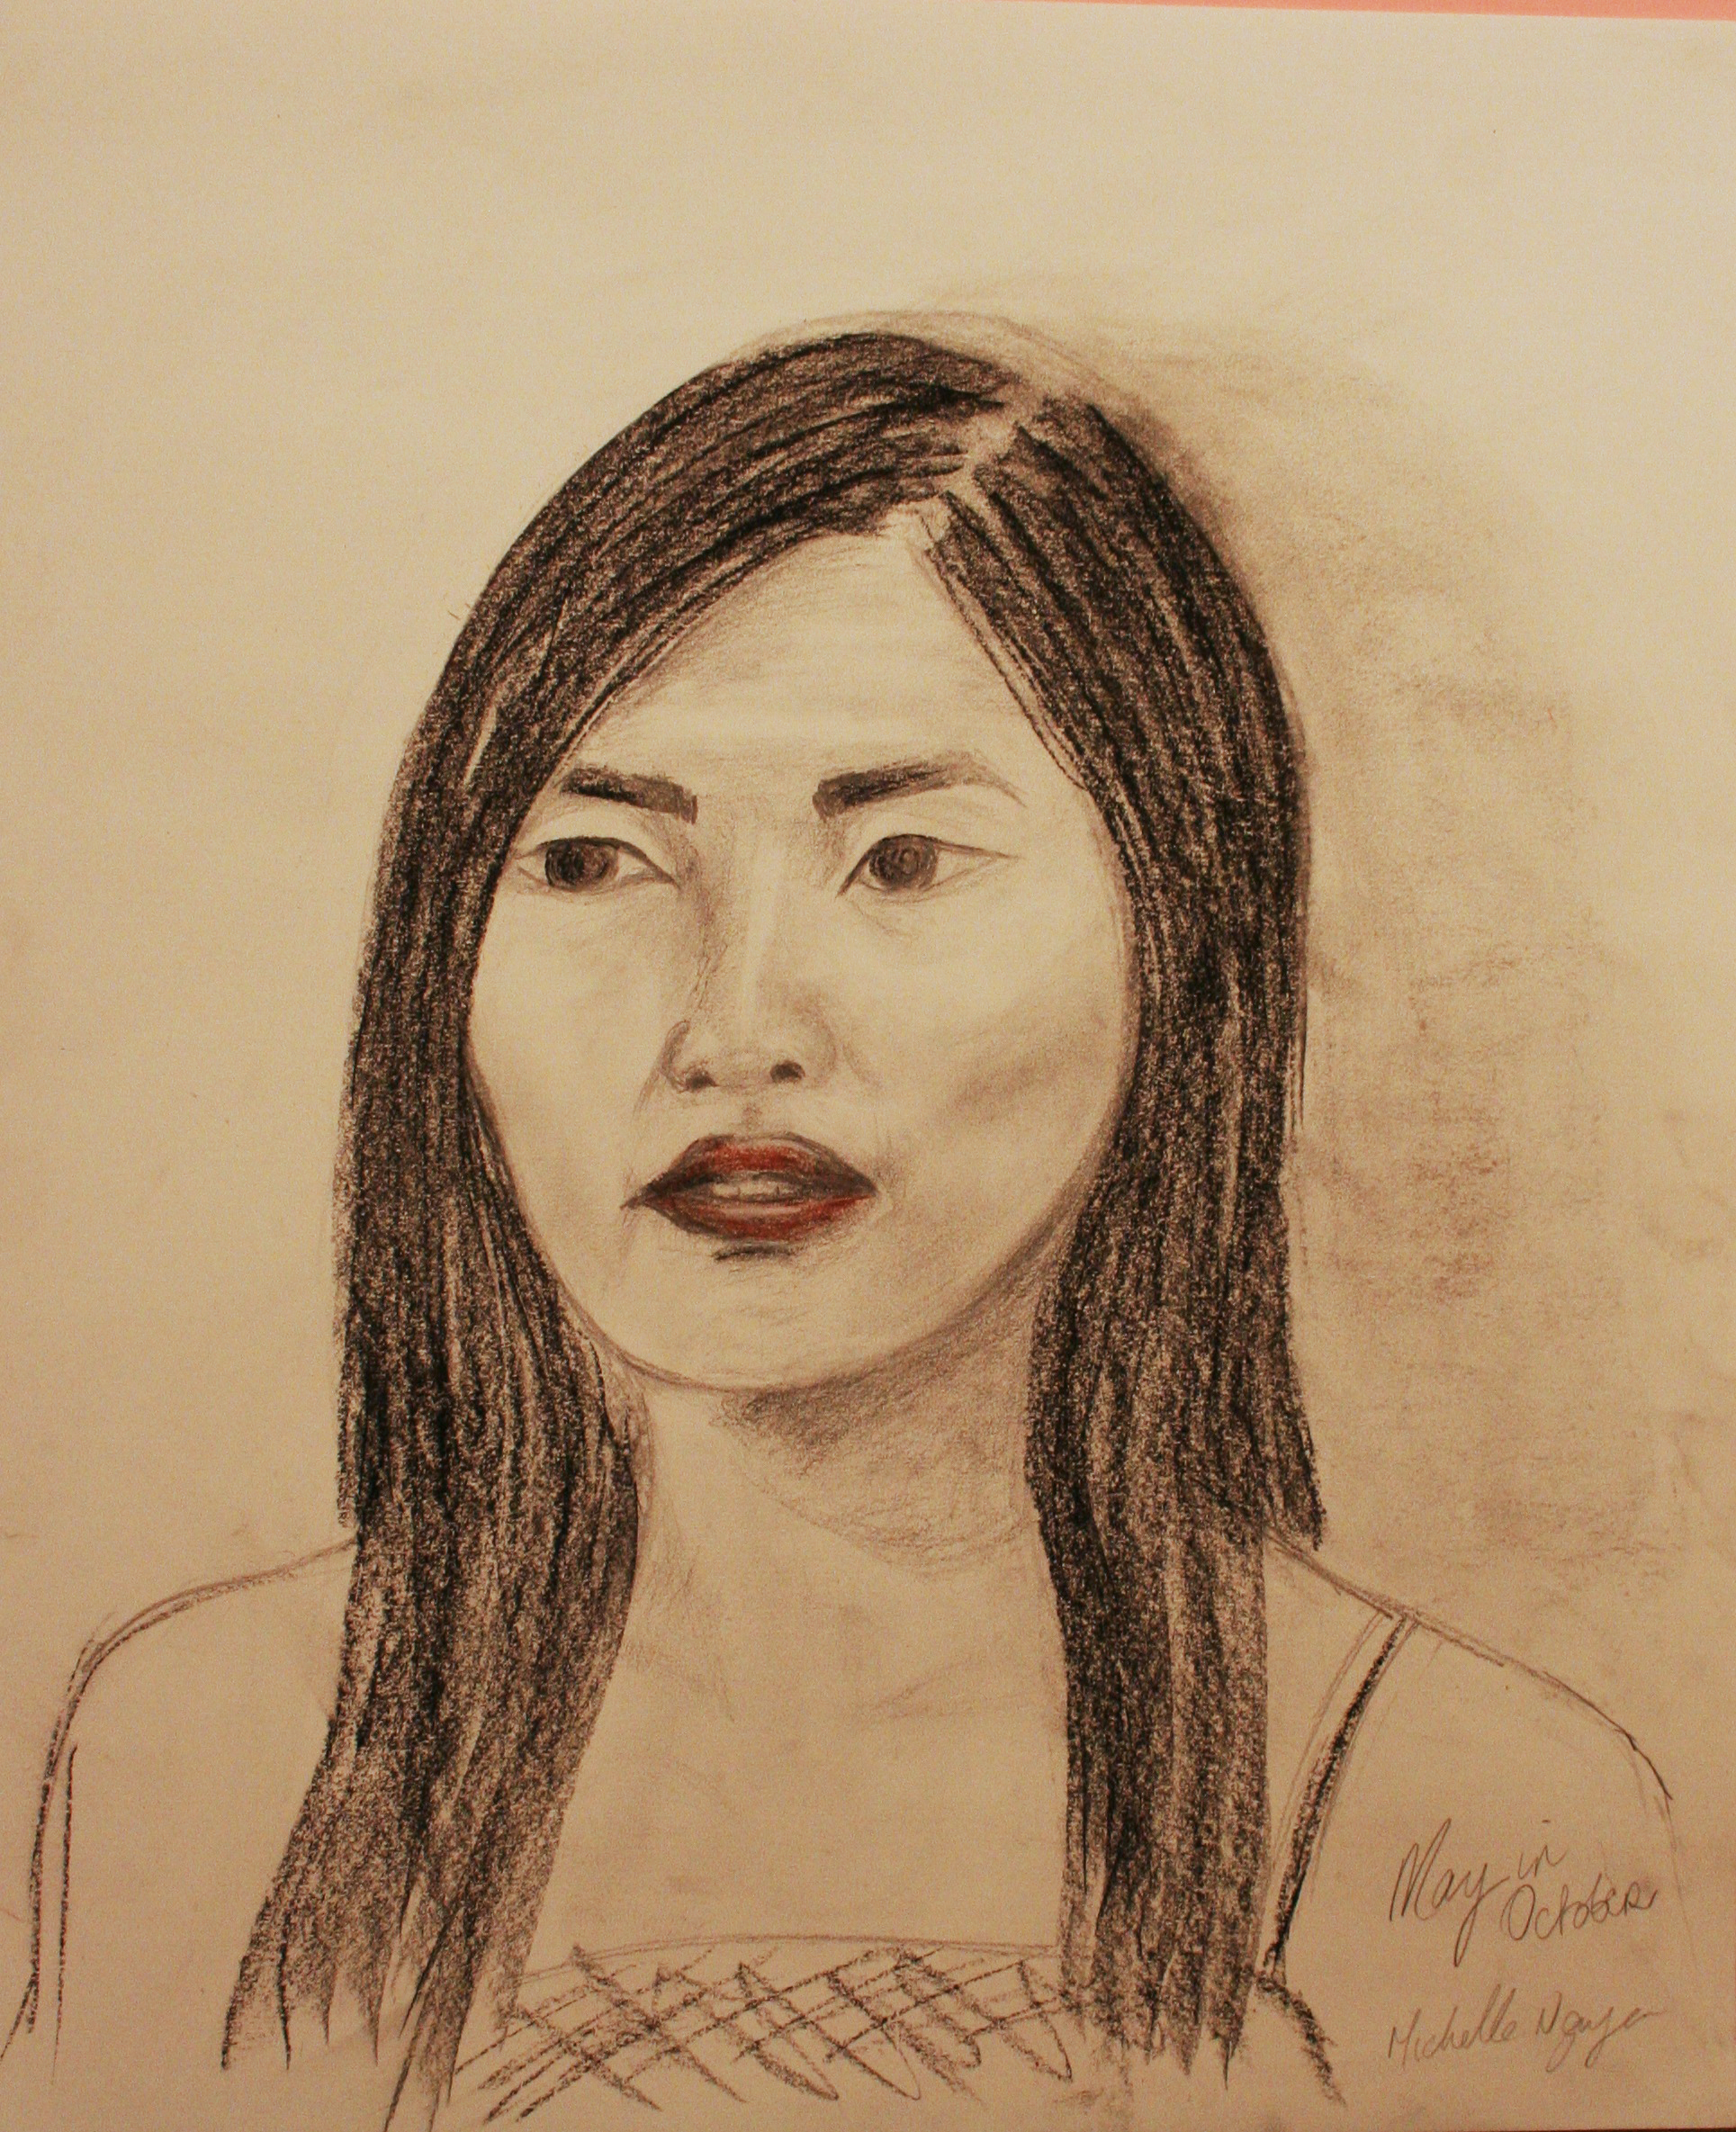 Michelle Leyden Nguyen did this 2-hour drawing.